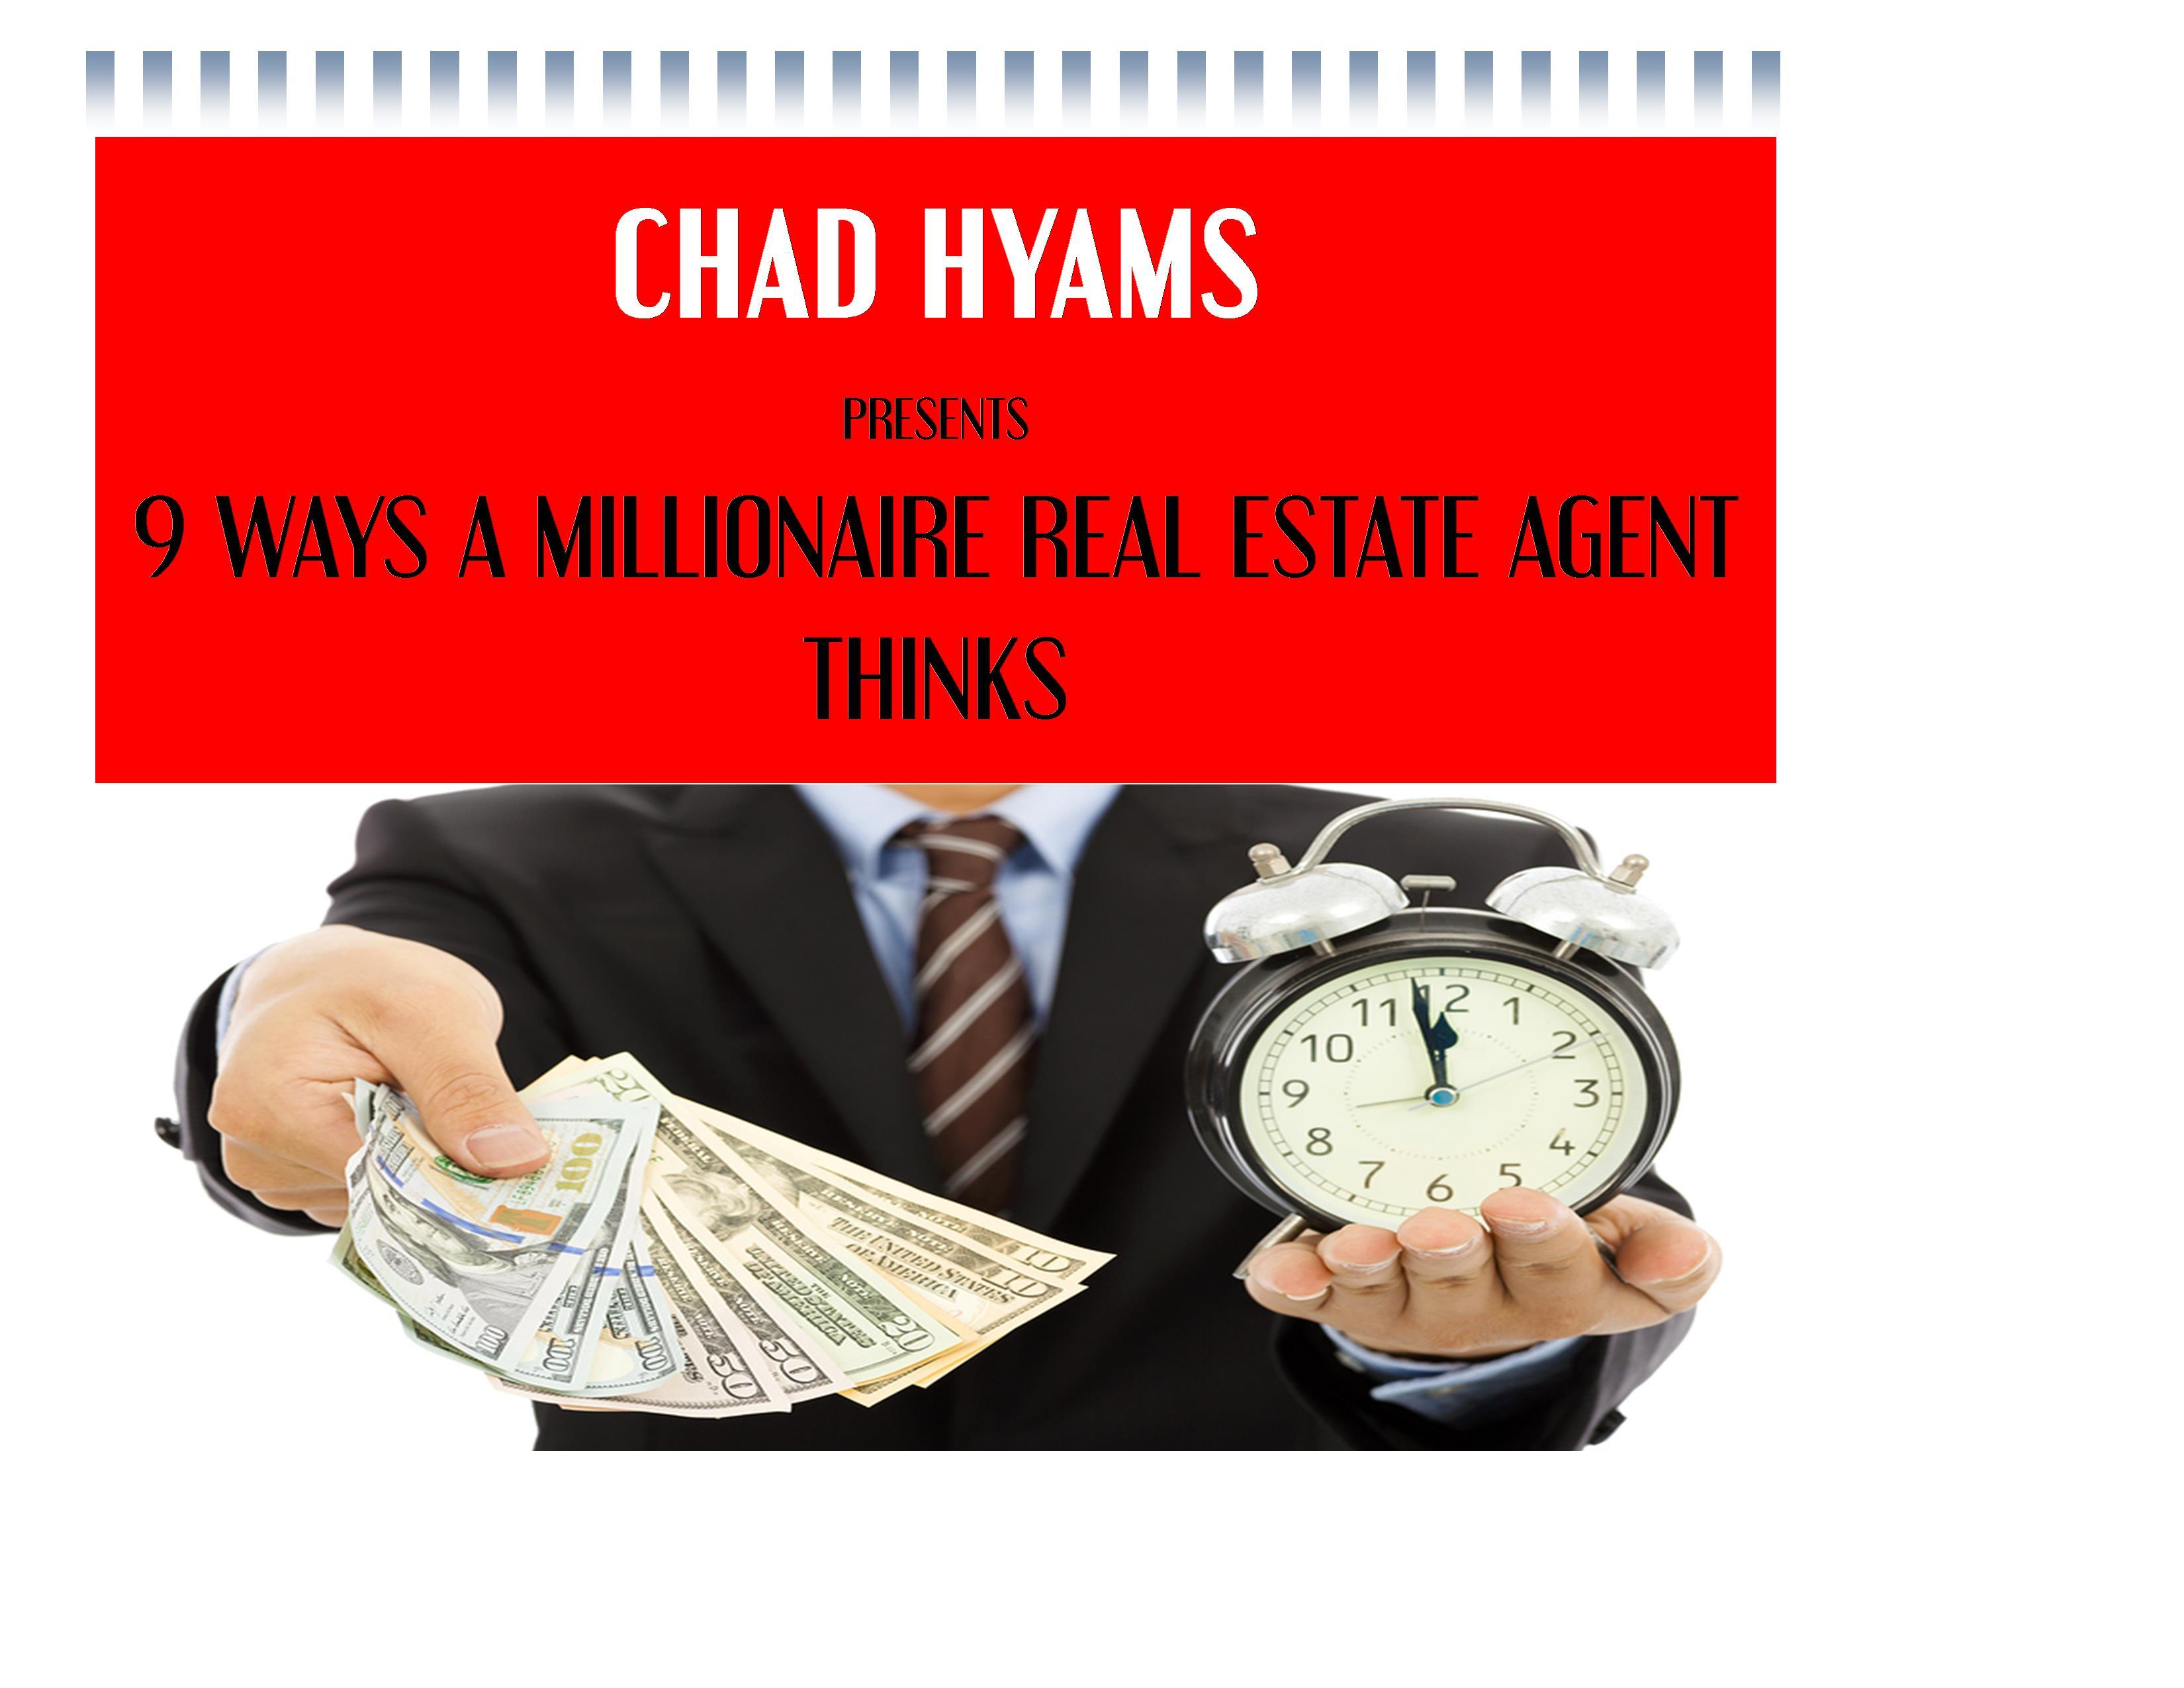 CHAD HYAMS Presents: The 9 Ways a Millionaire Agent Thinks